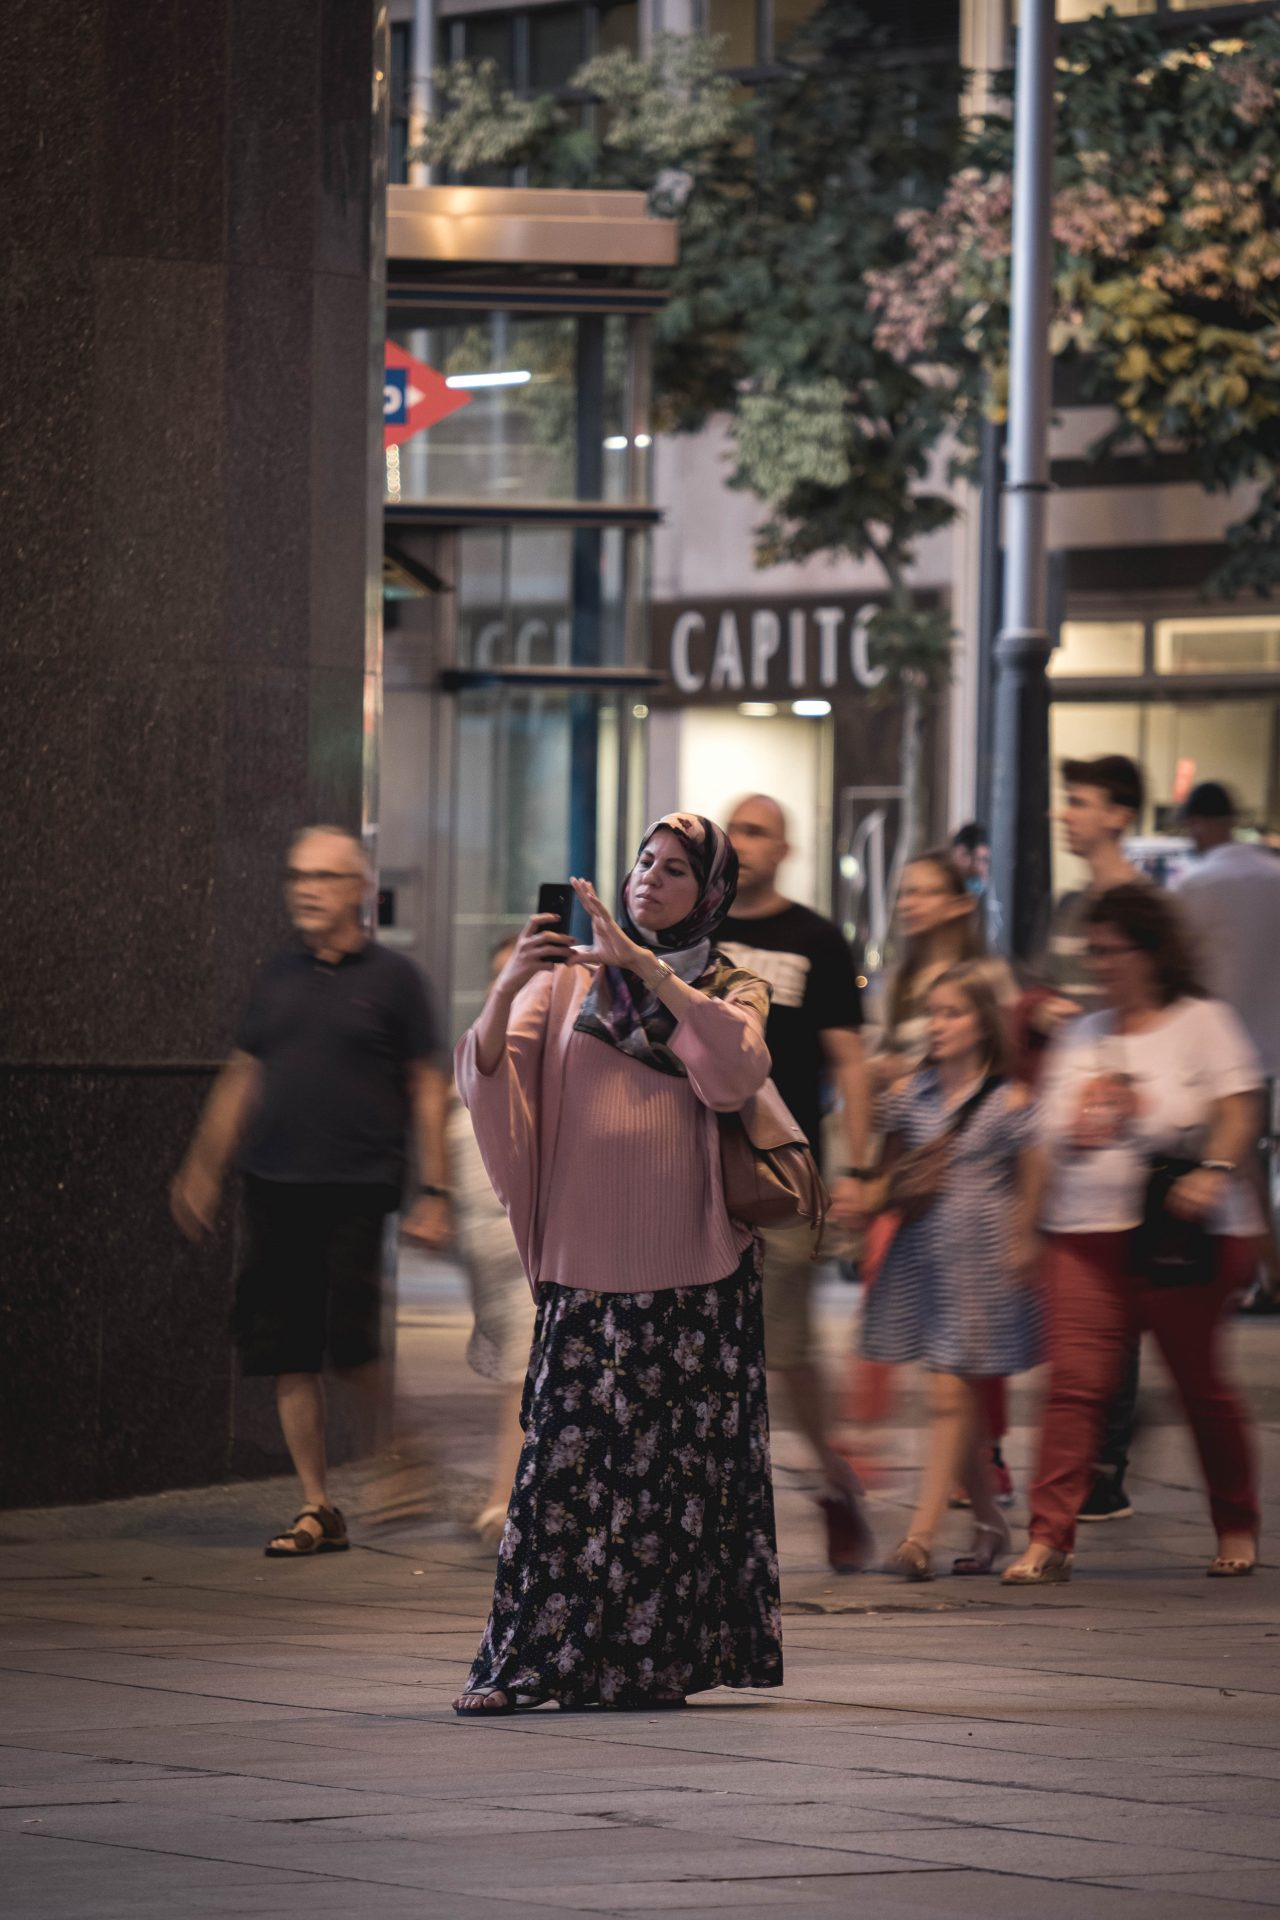 Muslim women taking a photo in the streets of madrid near Callao photo by Jo Kassis